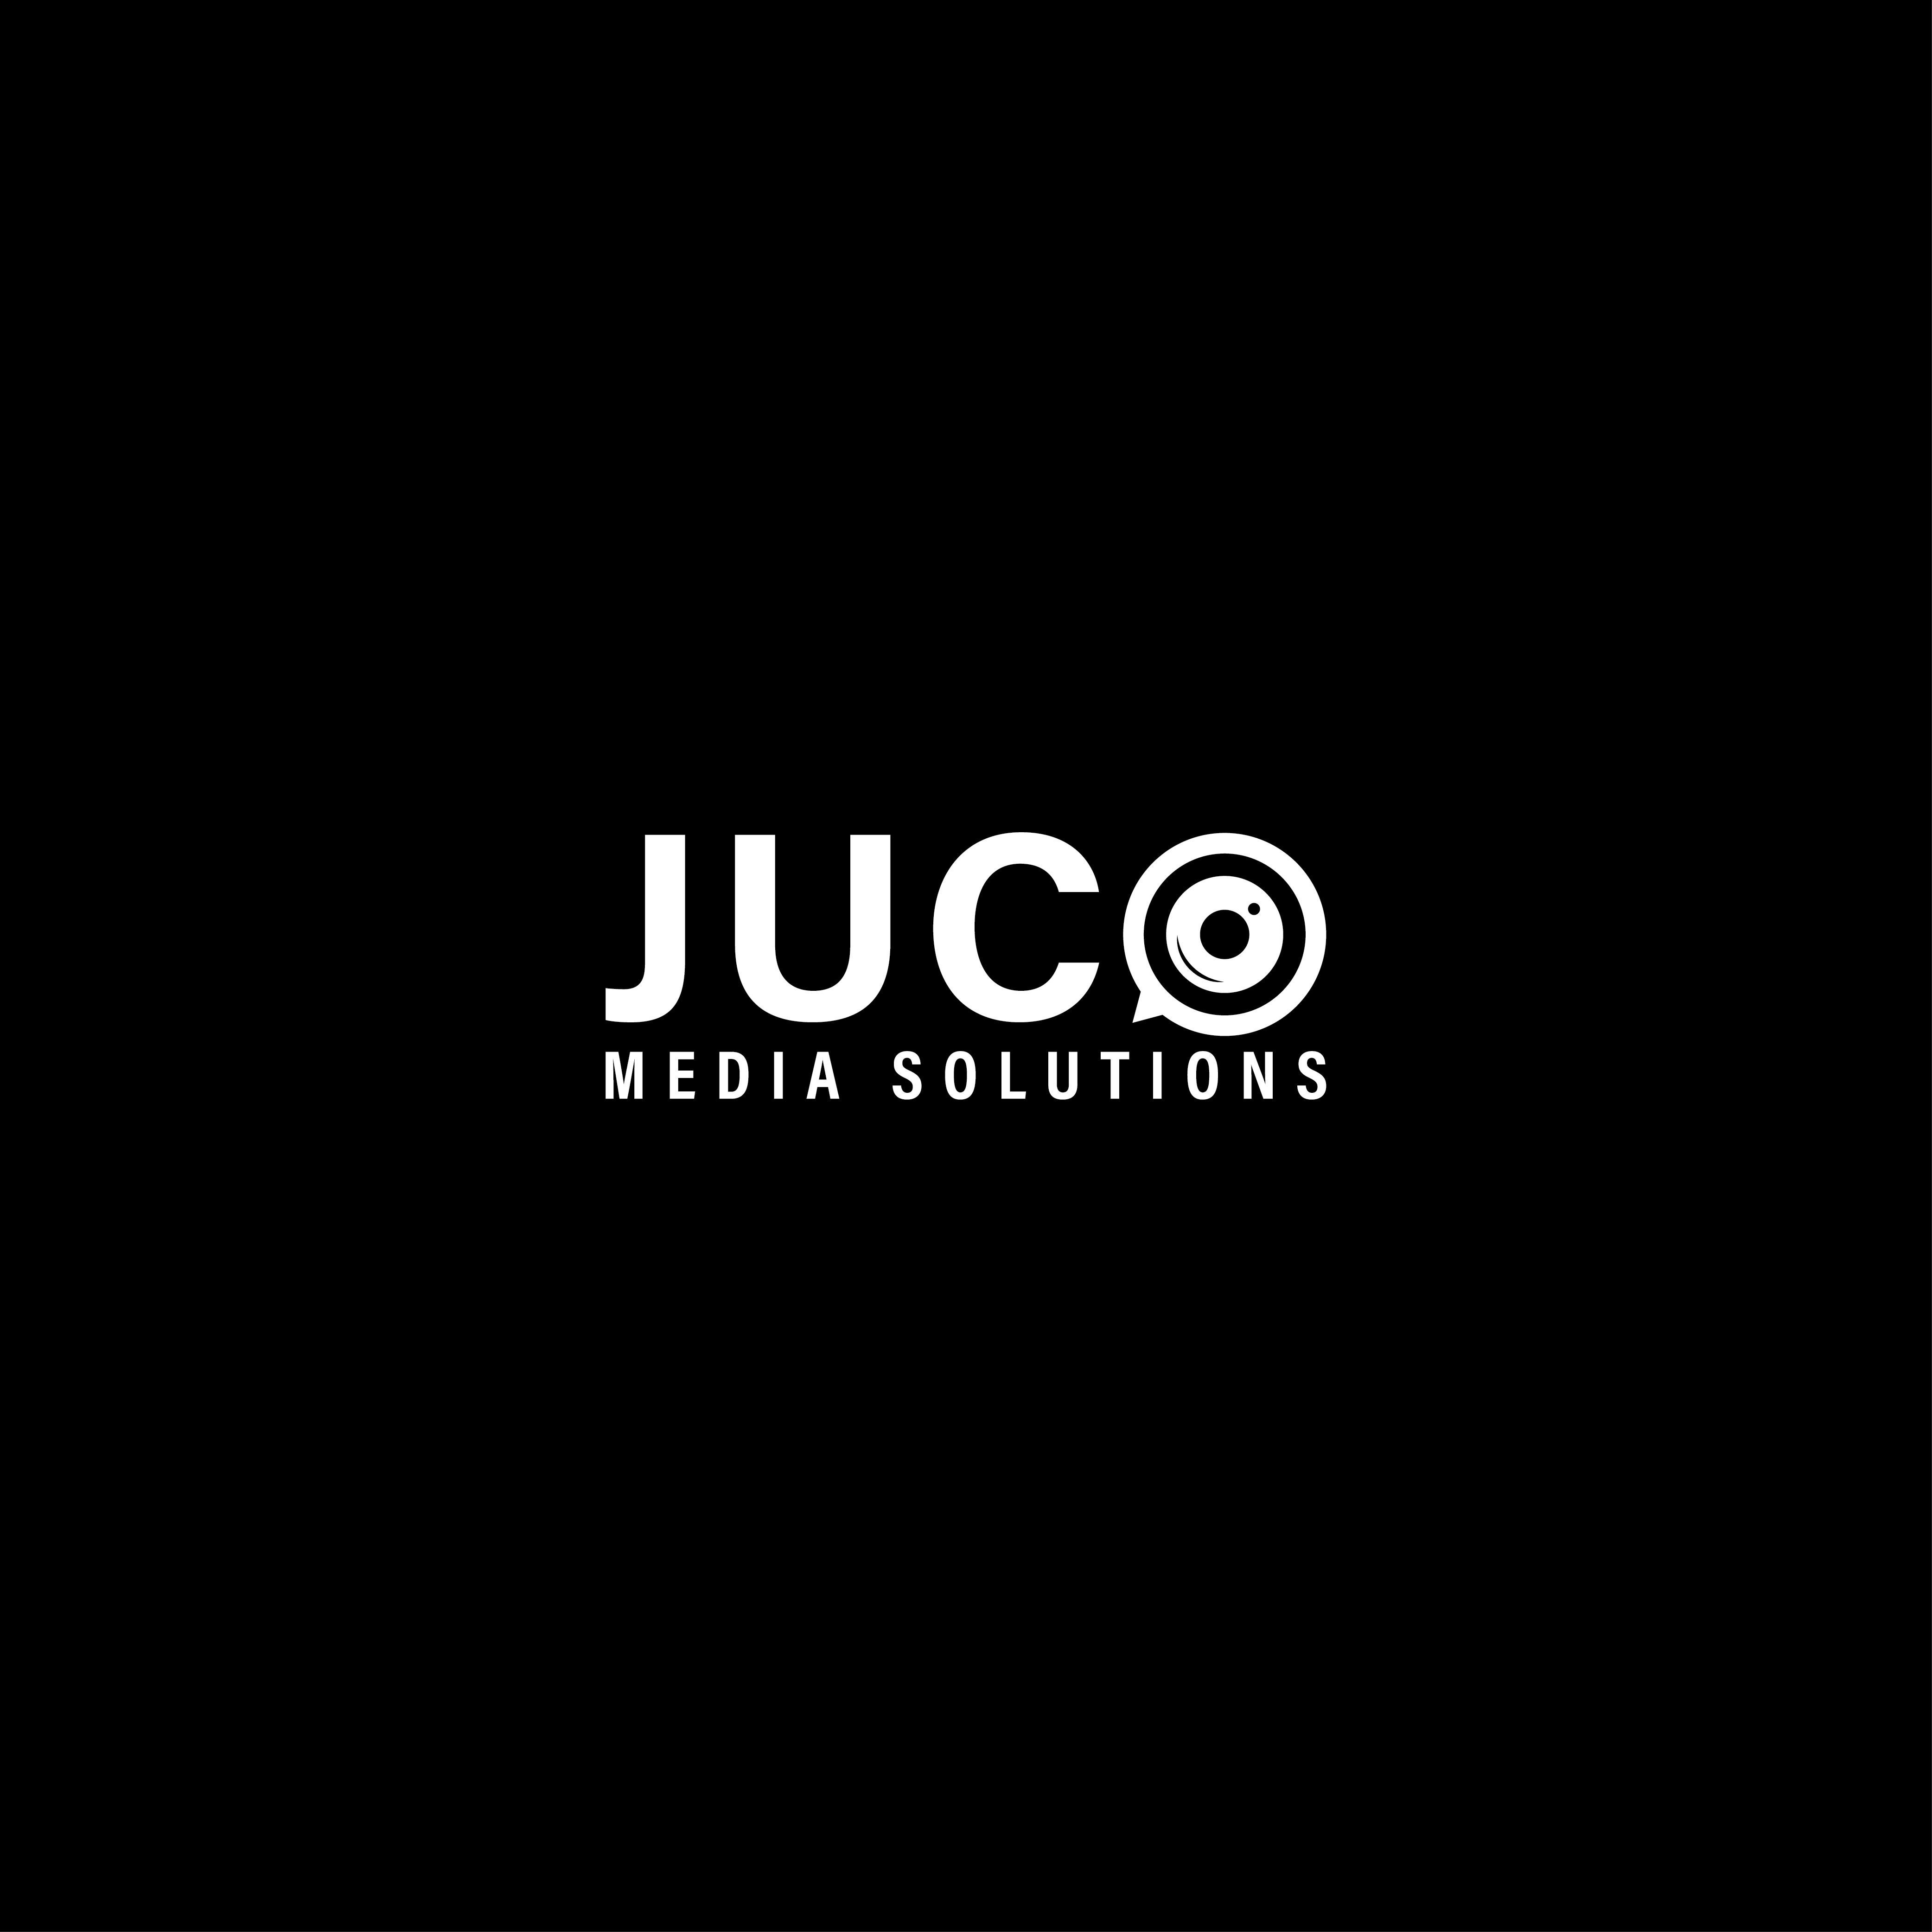 Juco Media Solutions